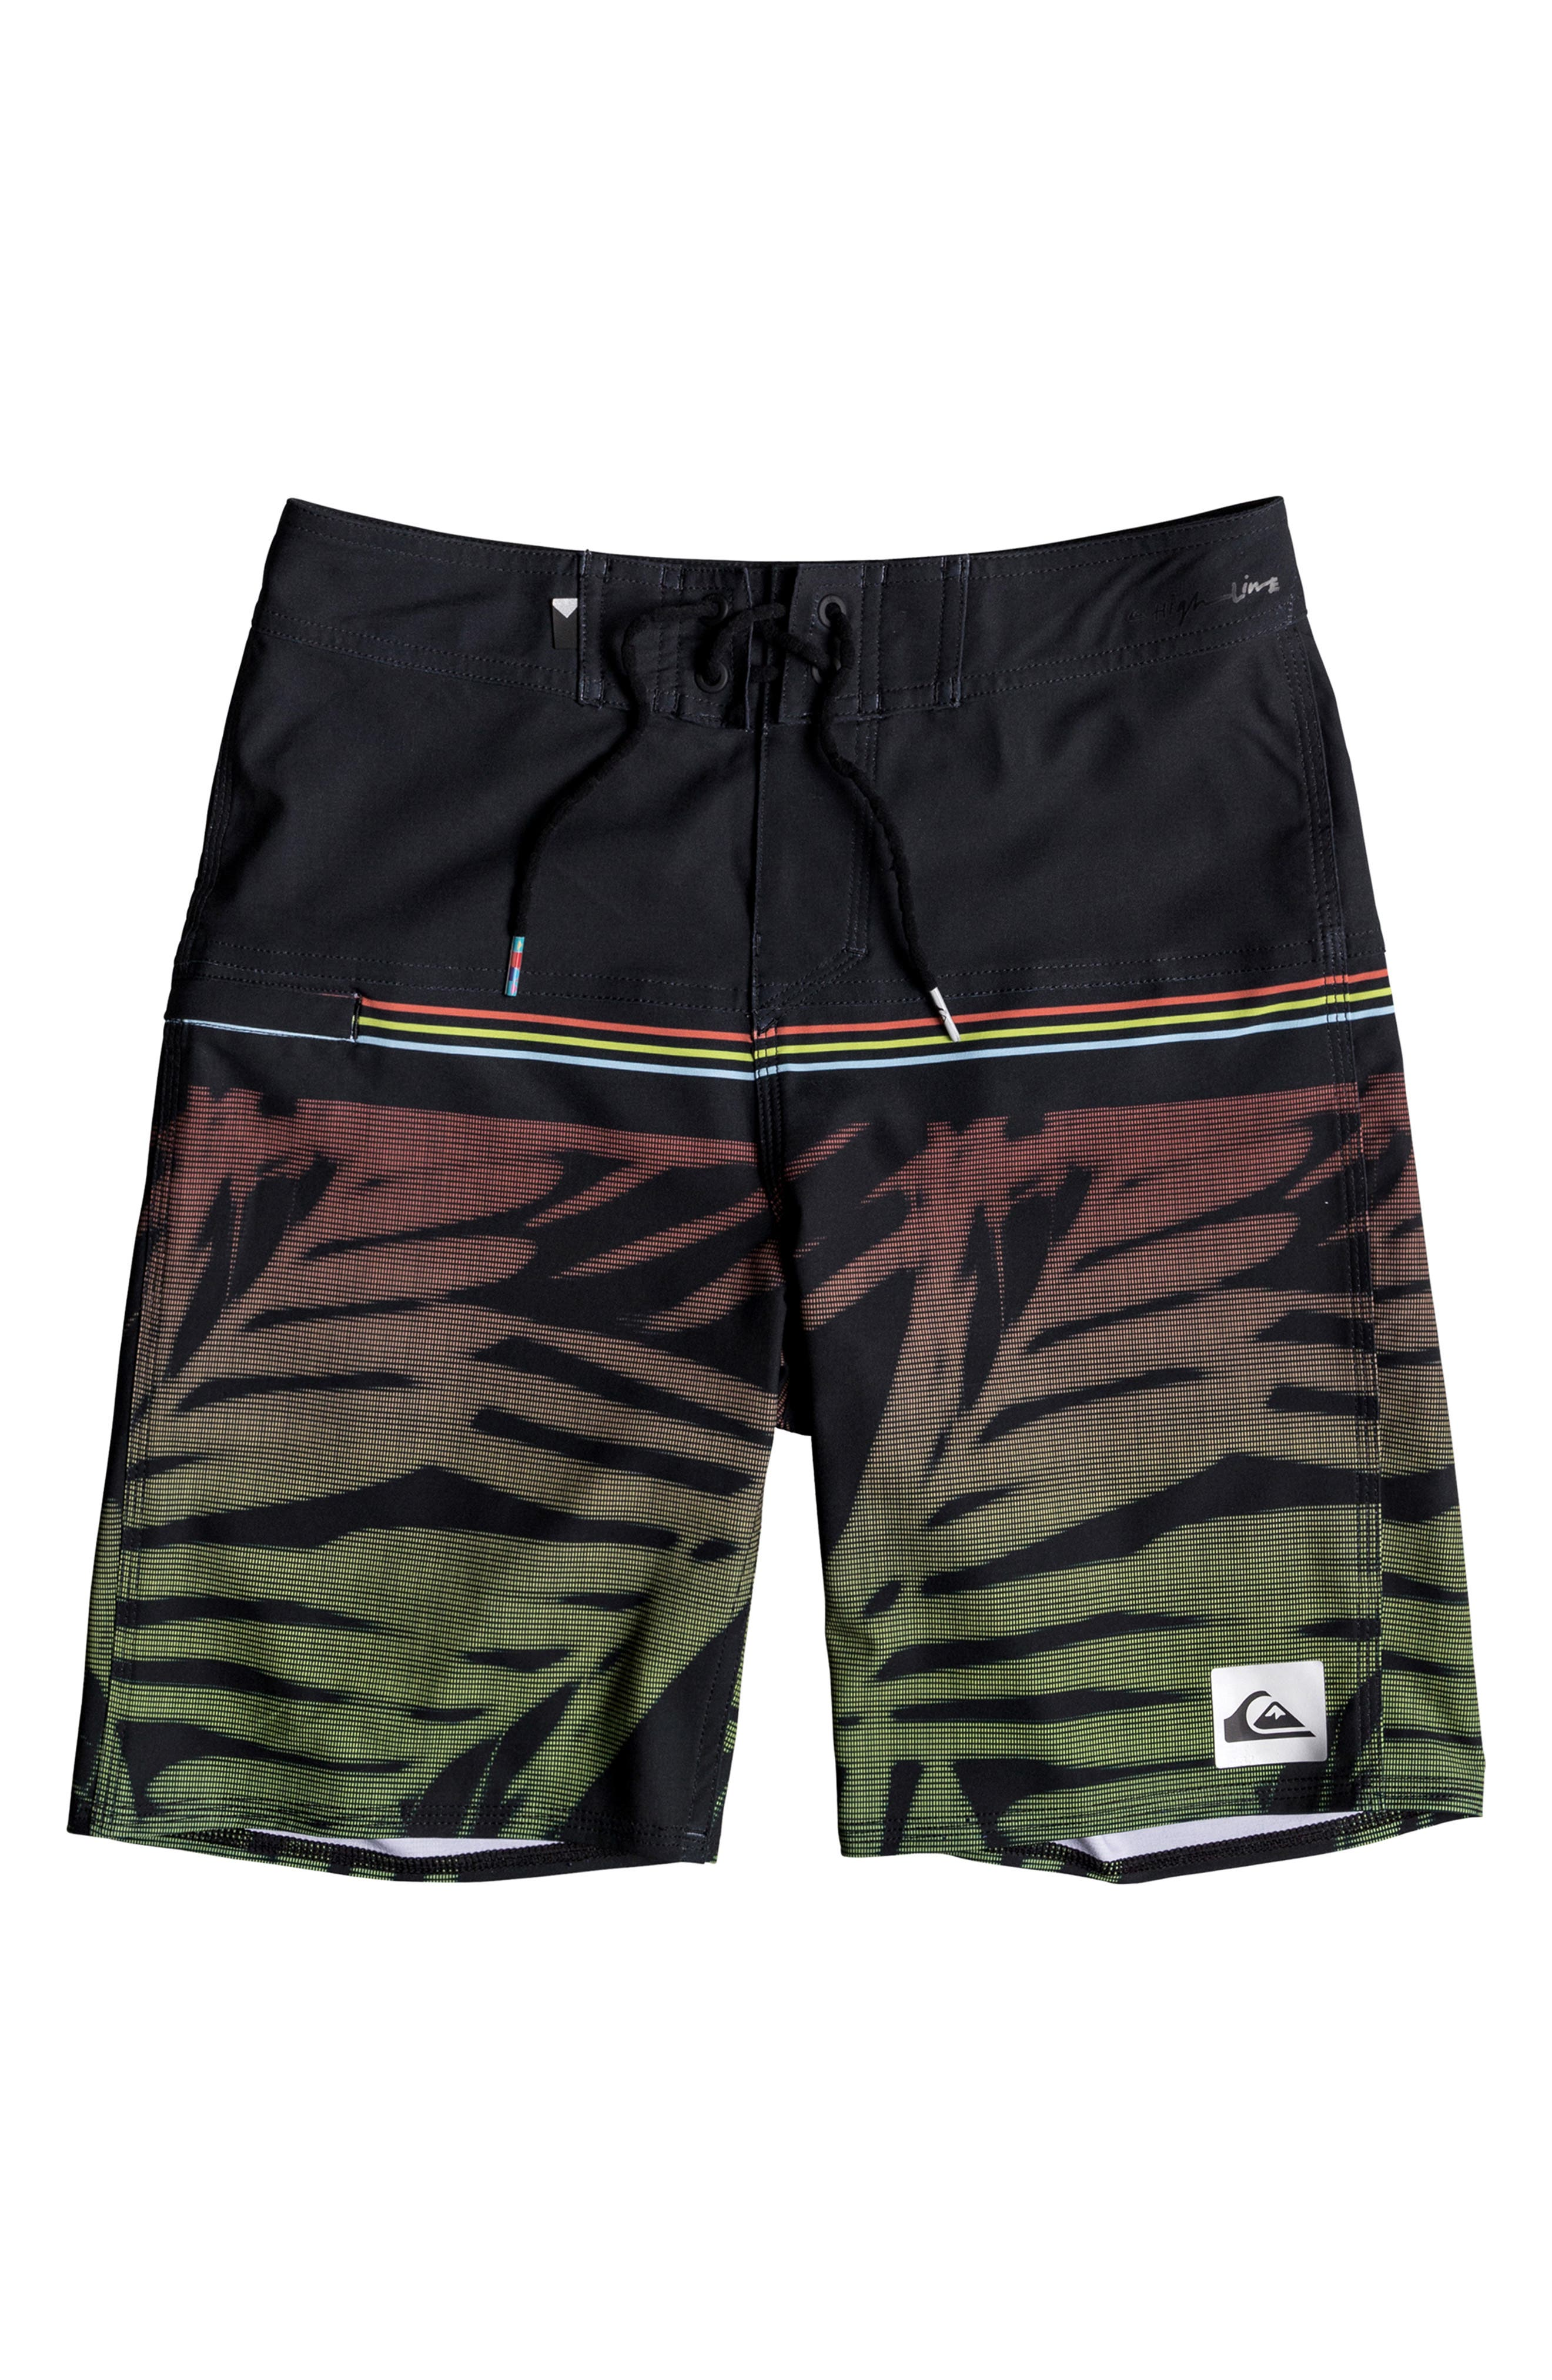 Highline Zen Board Shorts,                         Main,                         color, BLACK